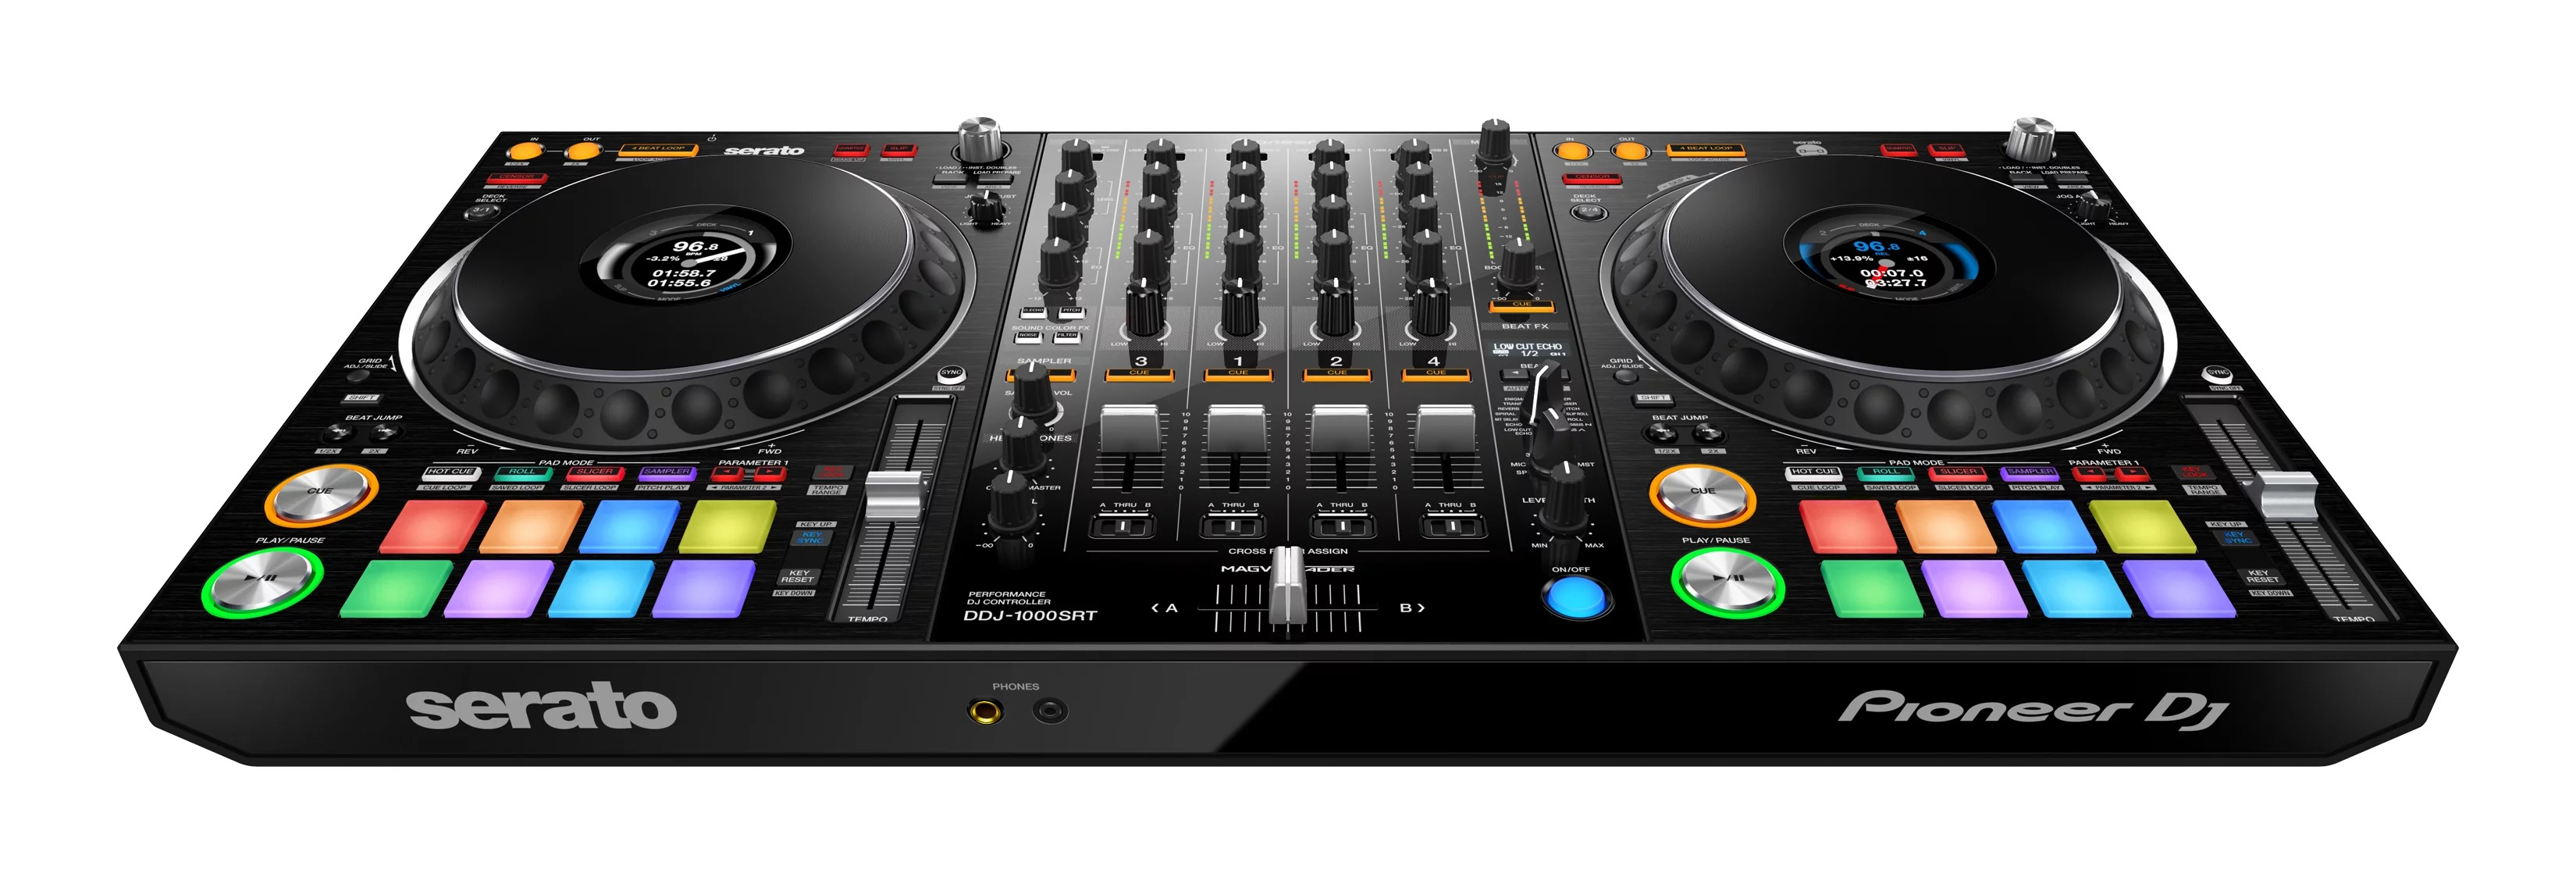 What is the difference between the DDJ-1000 Rekordbox and DDJ-1000SRT Serato